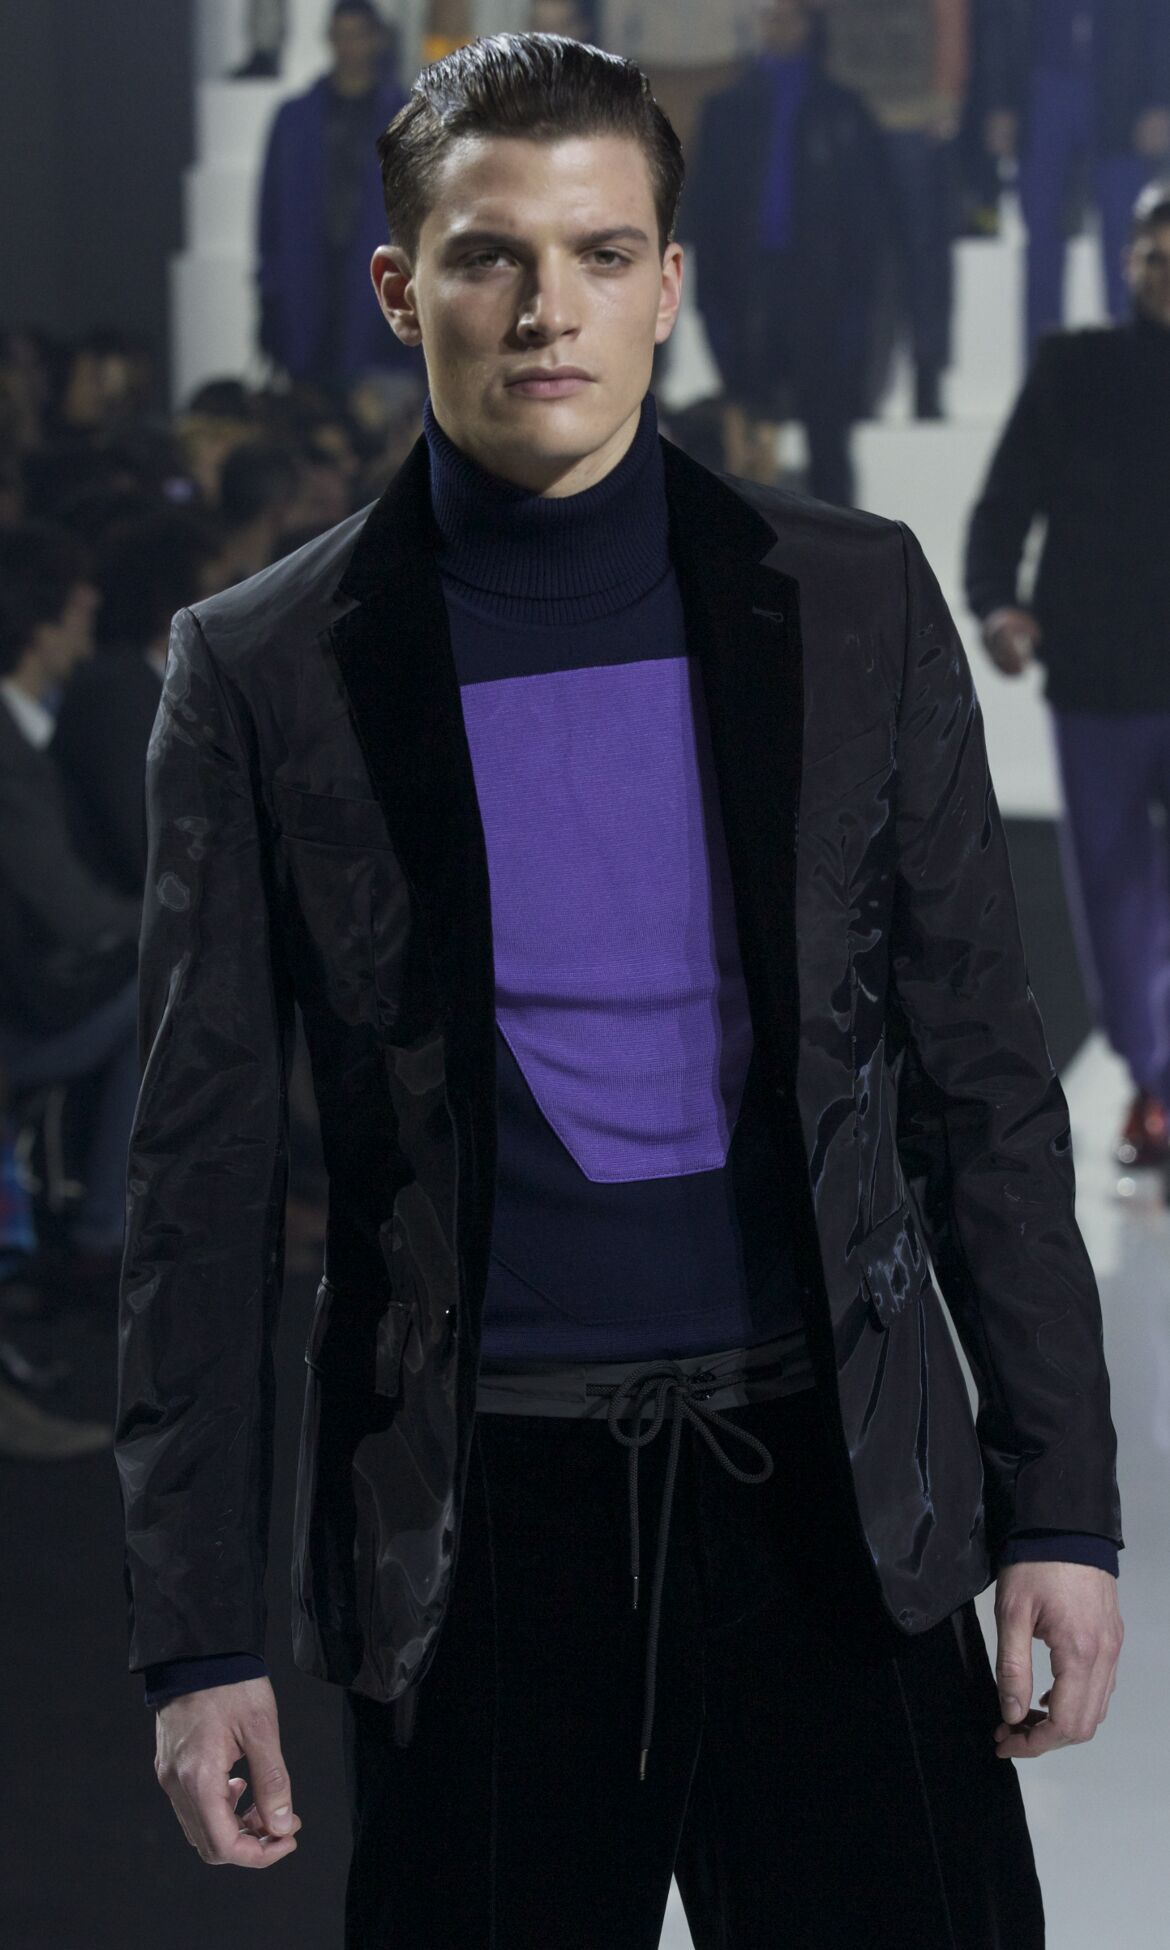 Catwalk Dirk Bikkembergs Fashion Show Winter 2013 Menswear